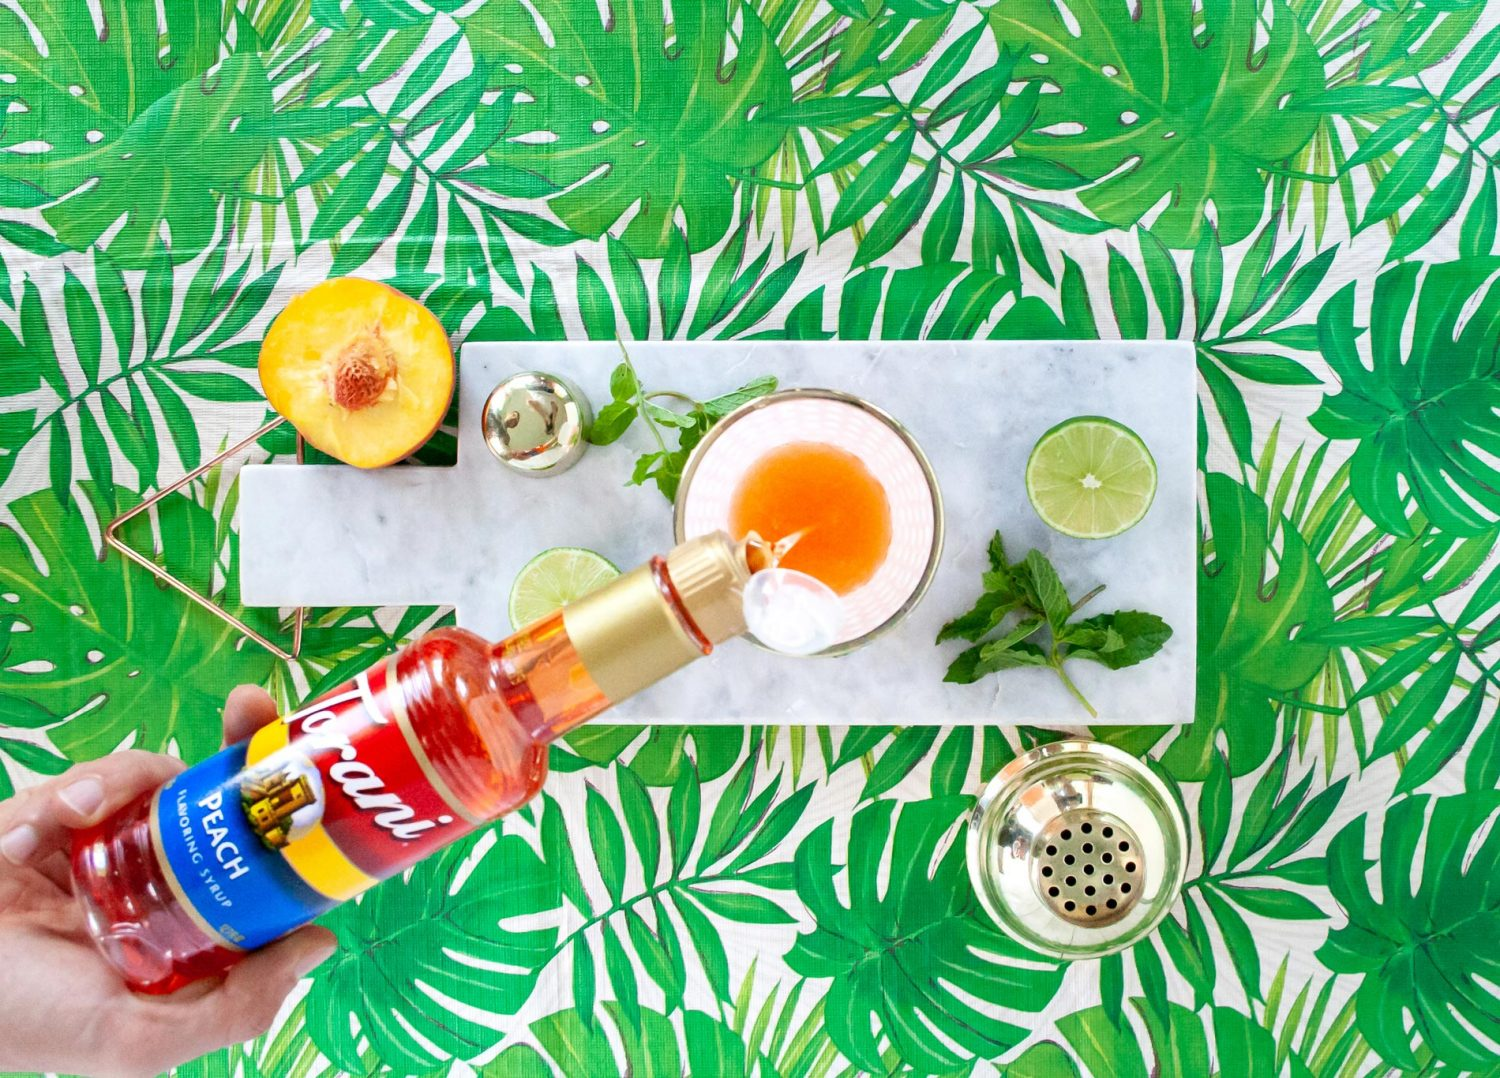 A peach Mai Tai cocktail made easy with Torani syrup. This Torani cocktail has two types of rum and can be customized just how you like. It's an easy any time cocktail perfect for summer or winter when you are looking to whisked away to warmer days. Elle Talk| #ad #ToraniEndlessSummer #cocktail #cocktailrecipe #drink #drinks #rum #rumcocktail #summer #recipeoftheday #drinkrecipe